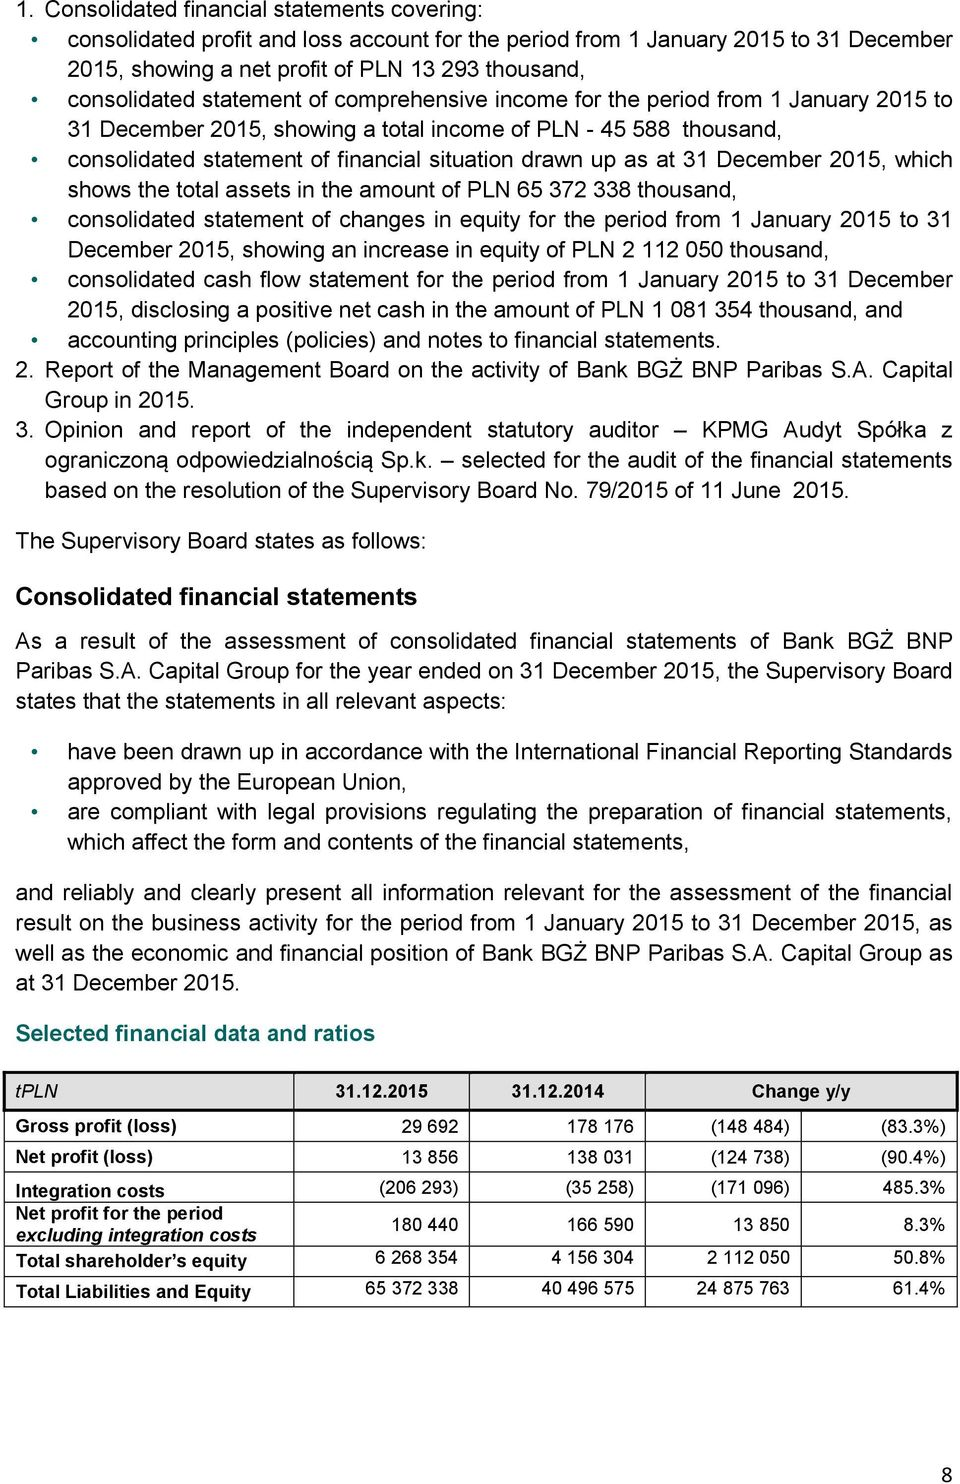 31 December 2015, which shows the total assets in the amount of PLN 65 372 338 thousand, consolidated statement of changes in equity for the period from 1 January 2015 to 31 December 2015, showing an